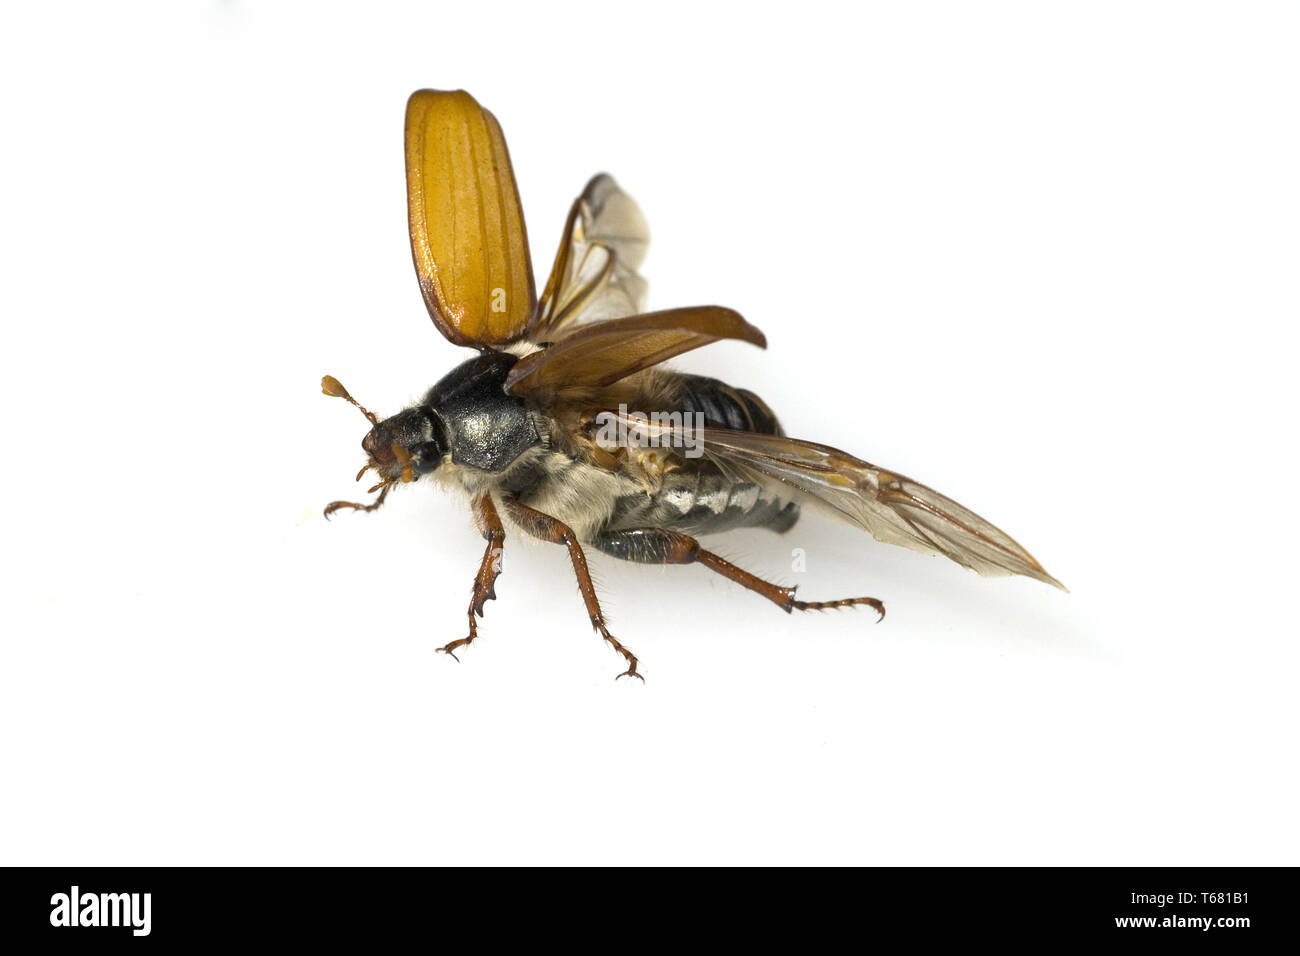 Cockchafer, Melolontha melolontha - Stock Image